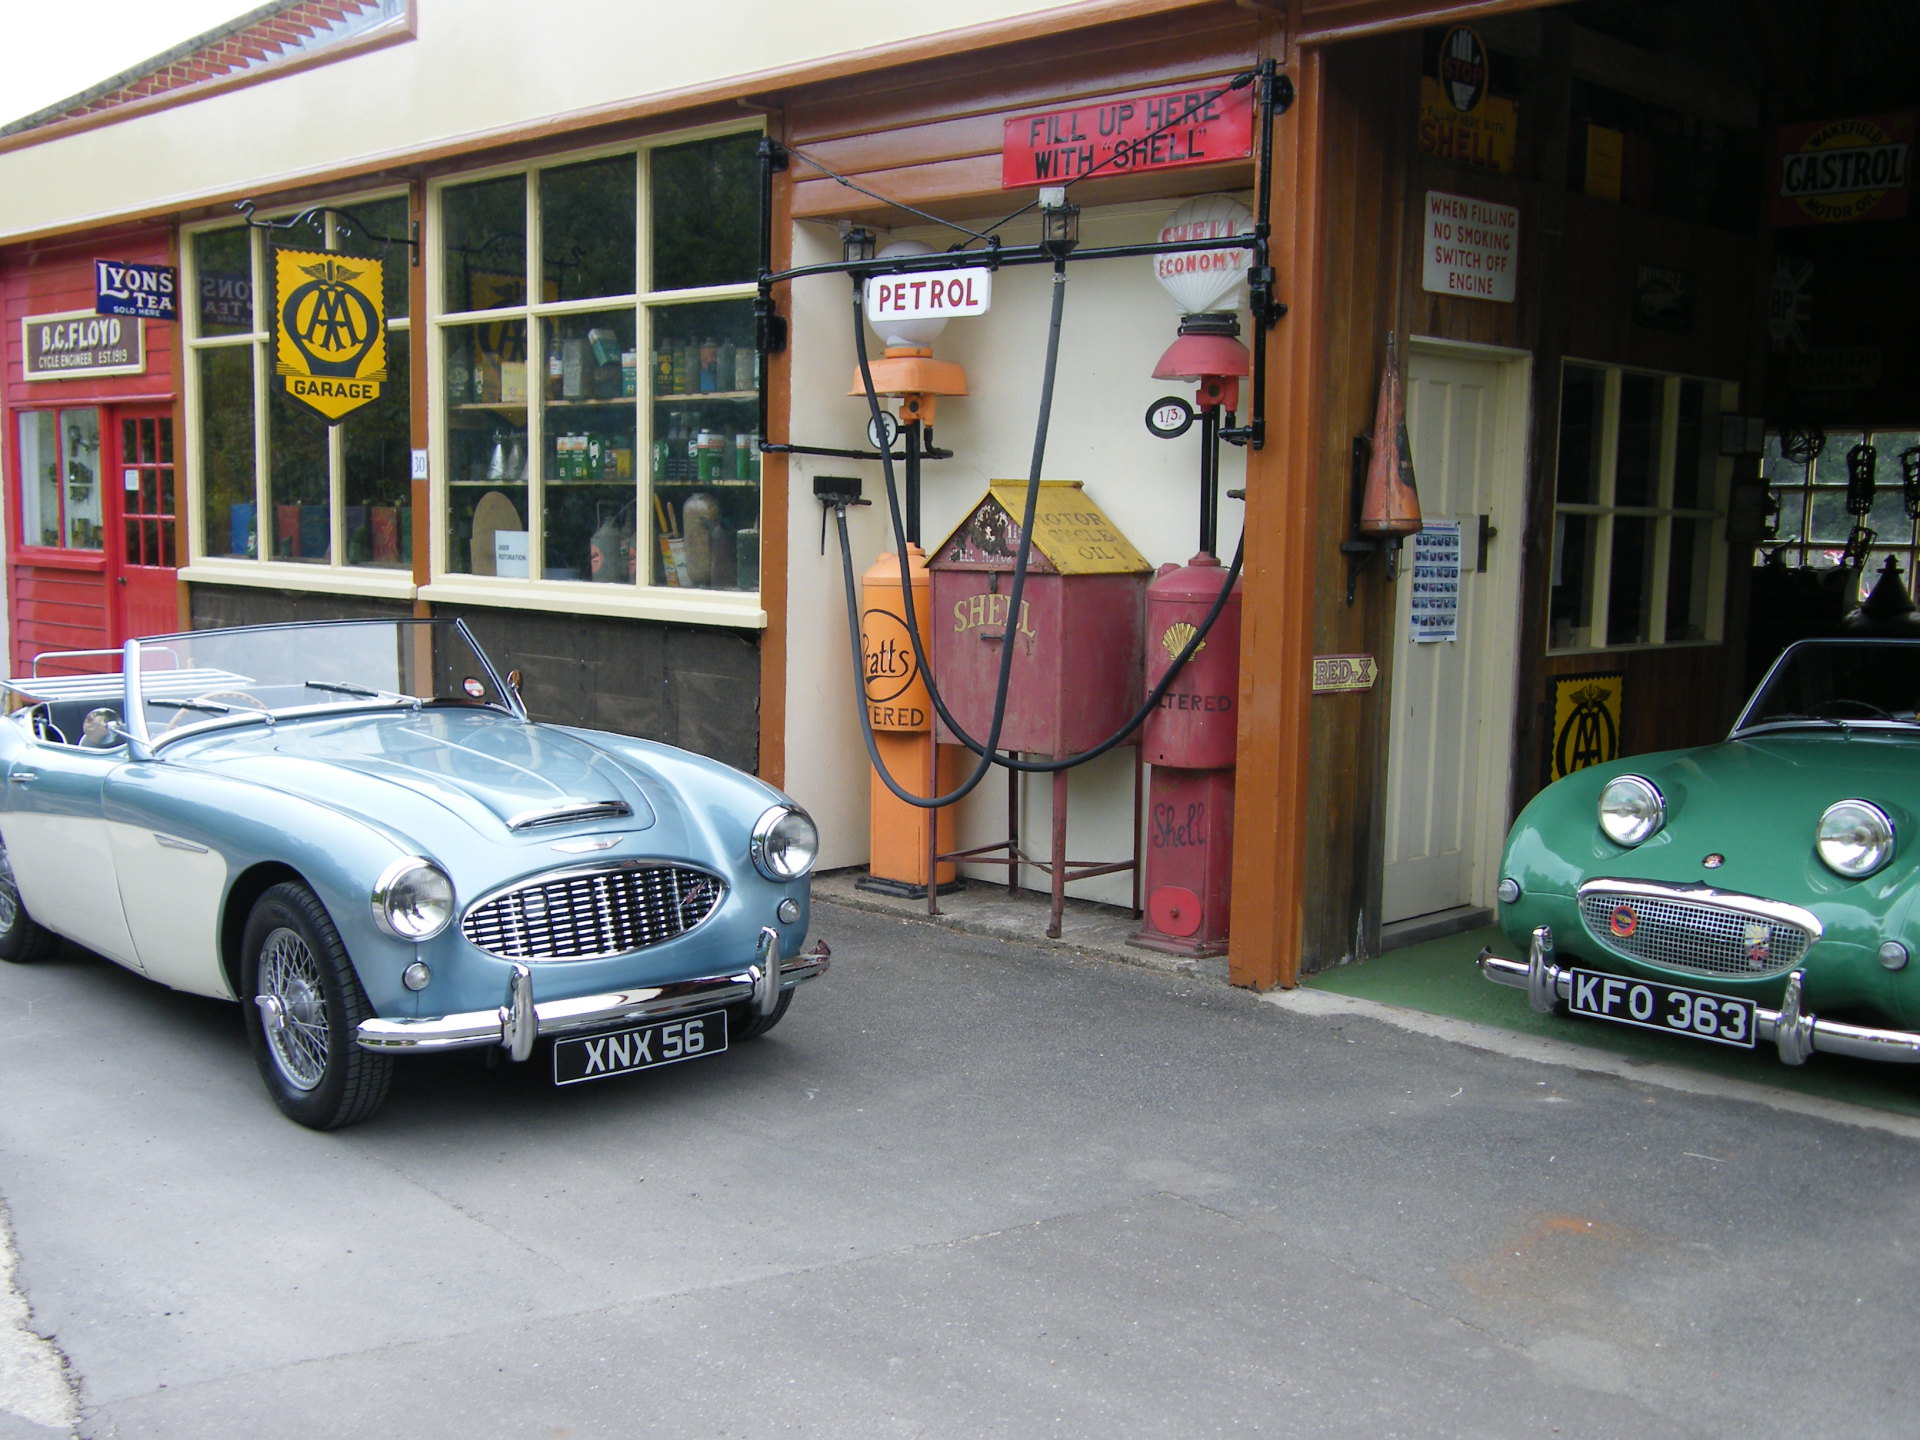 Amberley Museum - Village garage